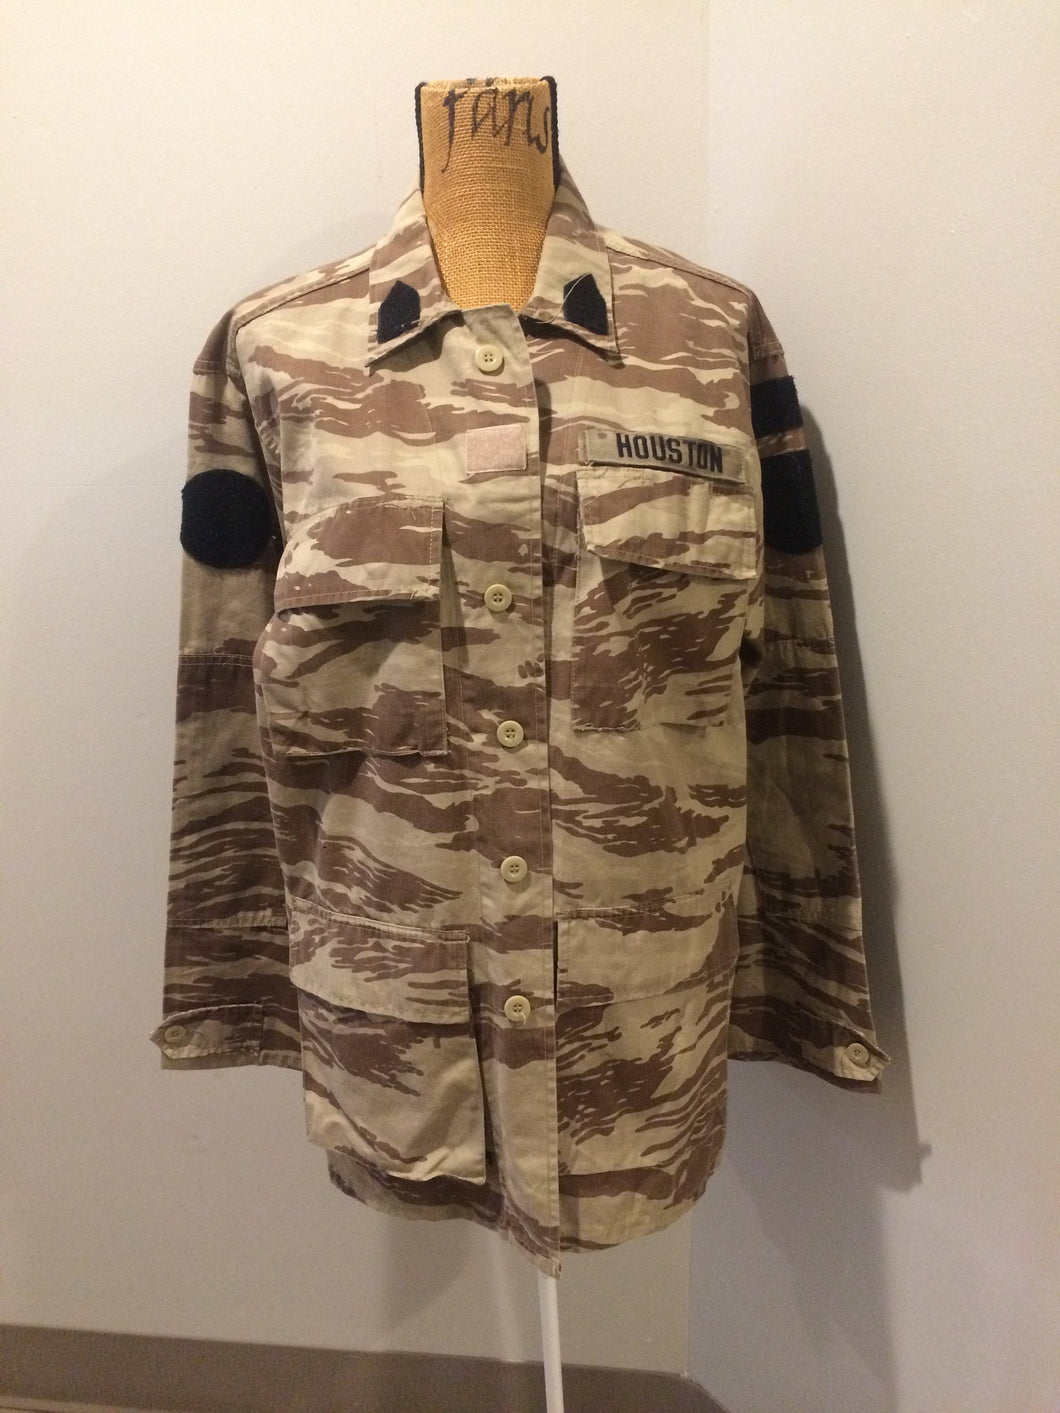 Kingspier Vintage - This desert camouflage light military jacket is in great condition. Made of cotton with 4 large cargo pockets, velcro rank patches, and